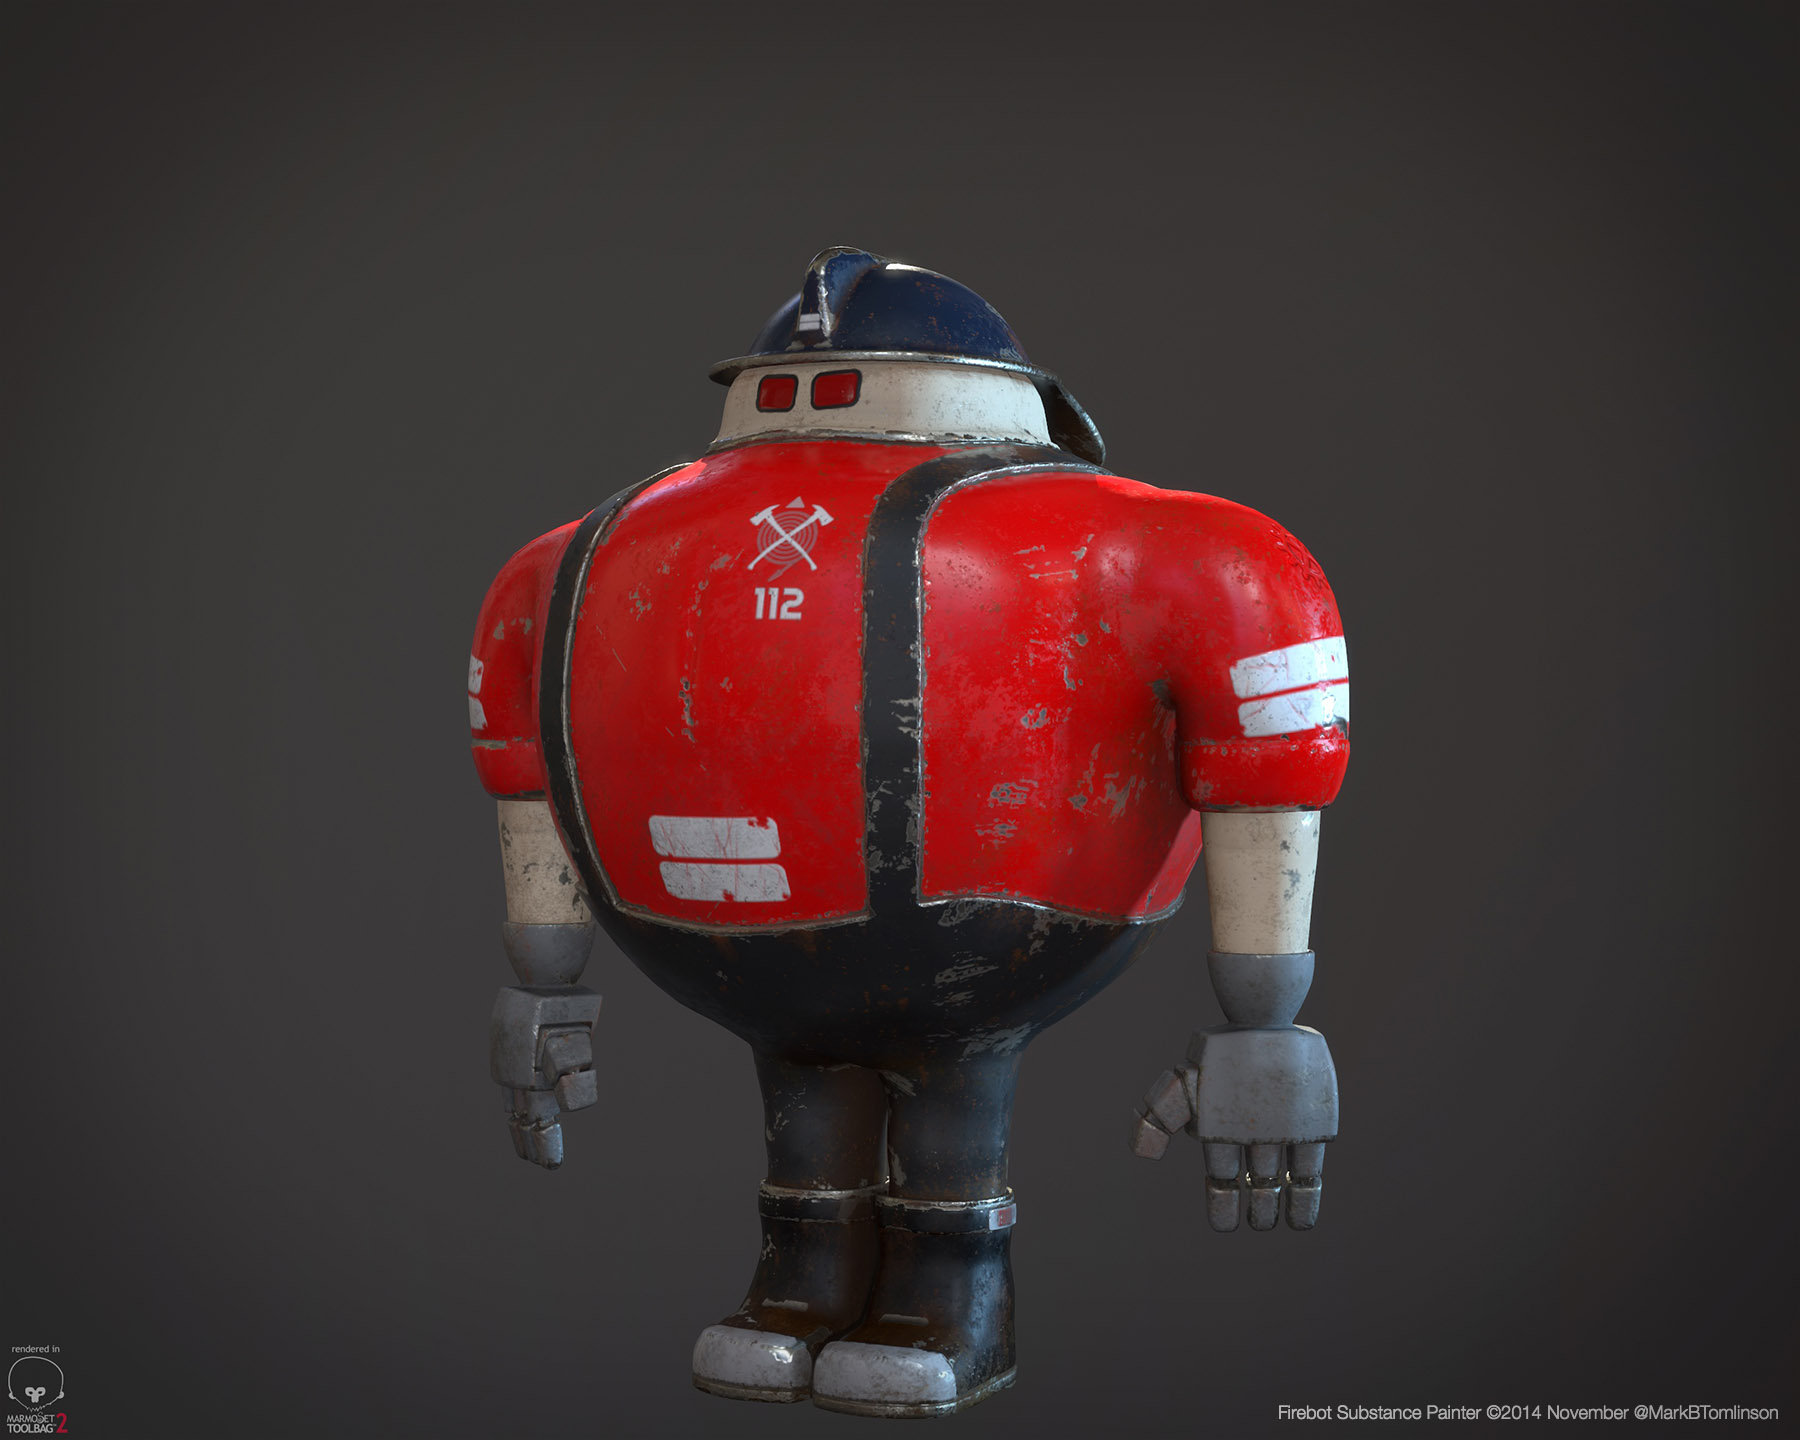 Mark b tomlinson firebot substance painter web 12